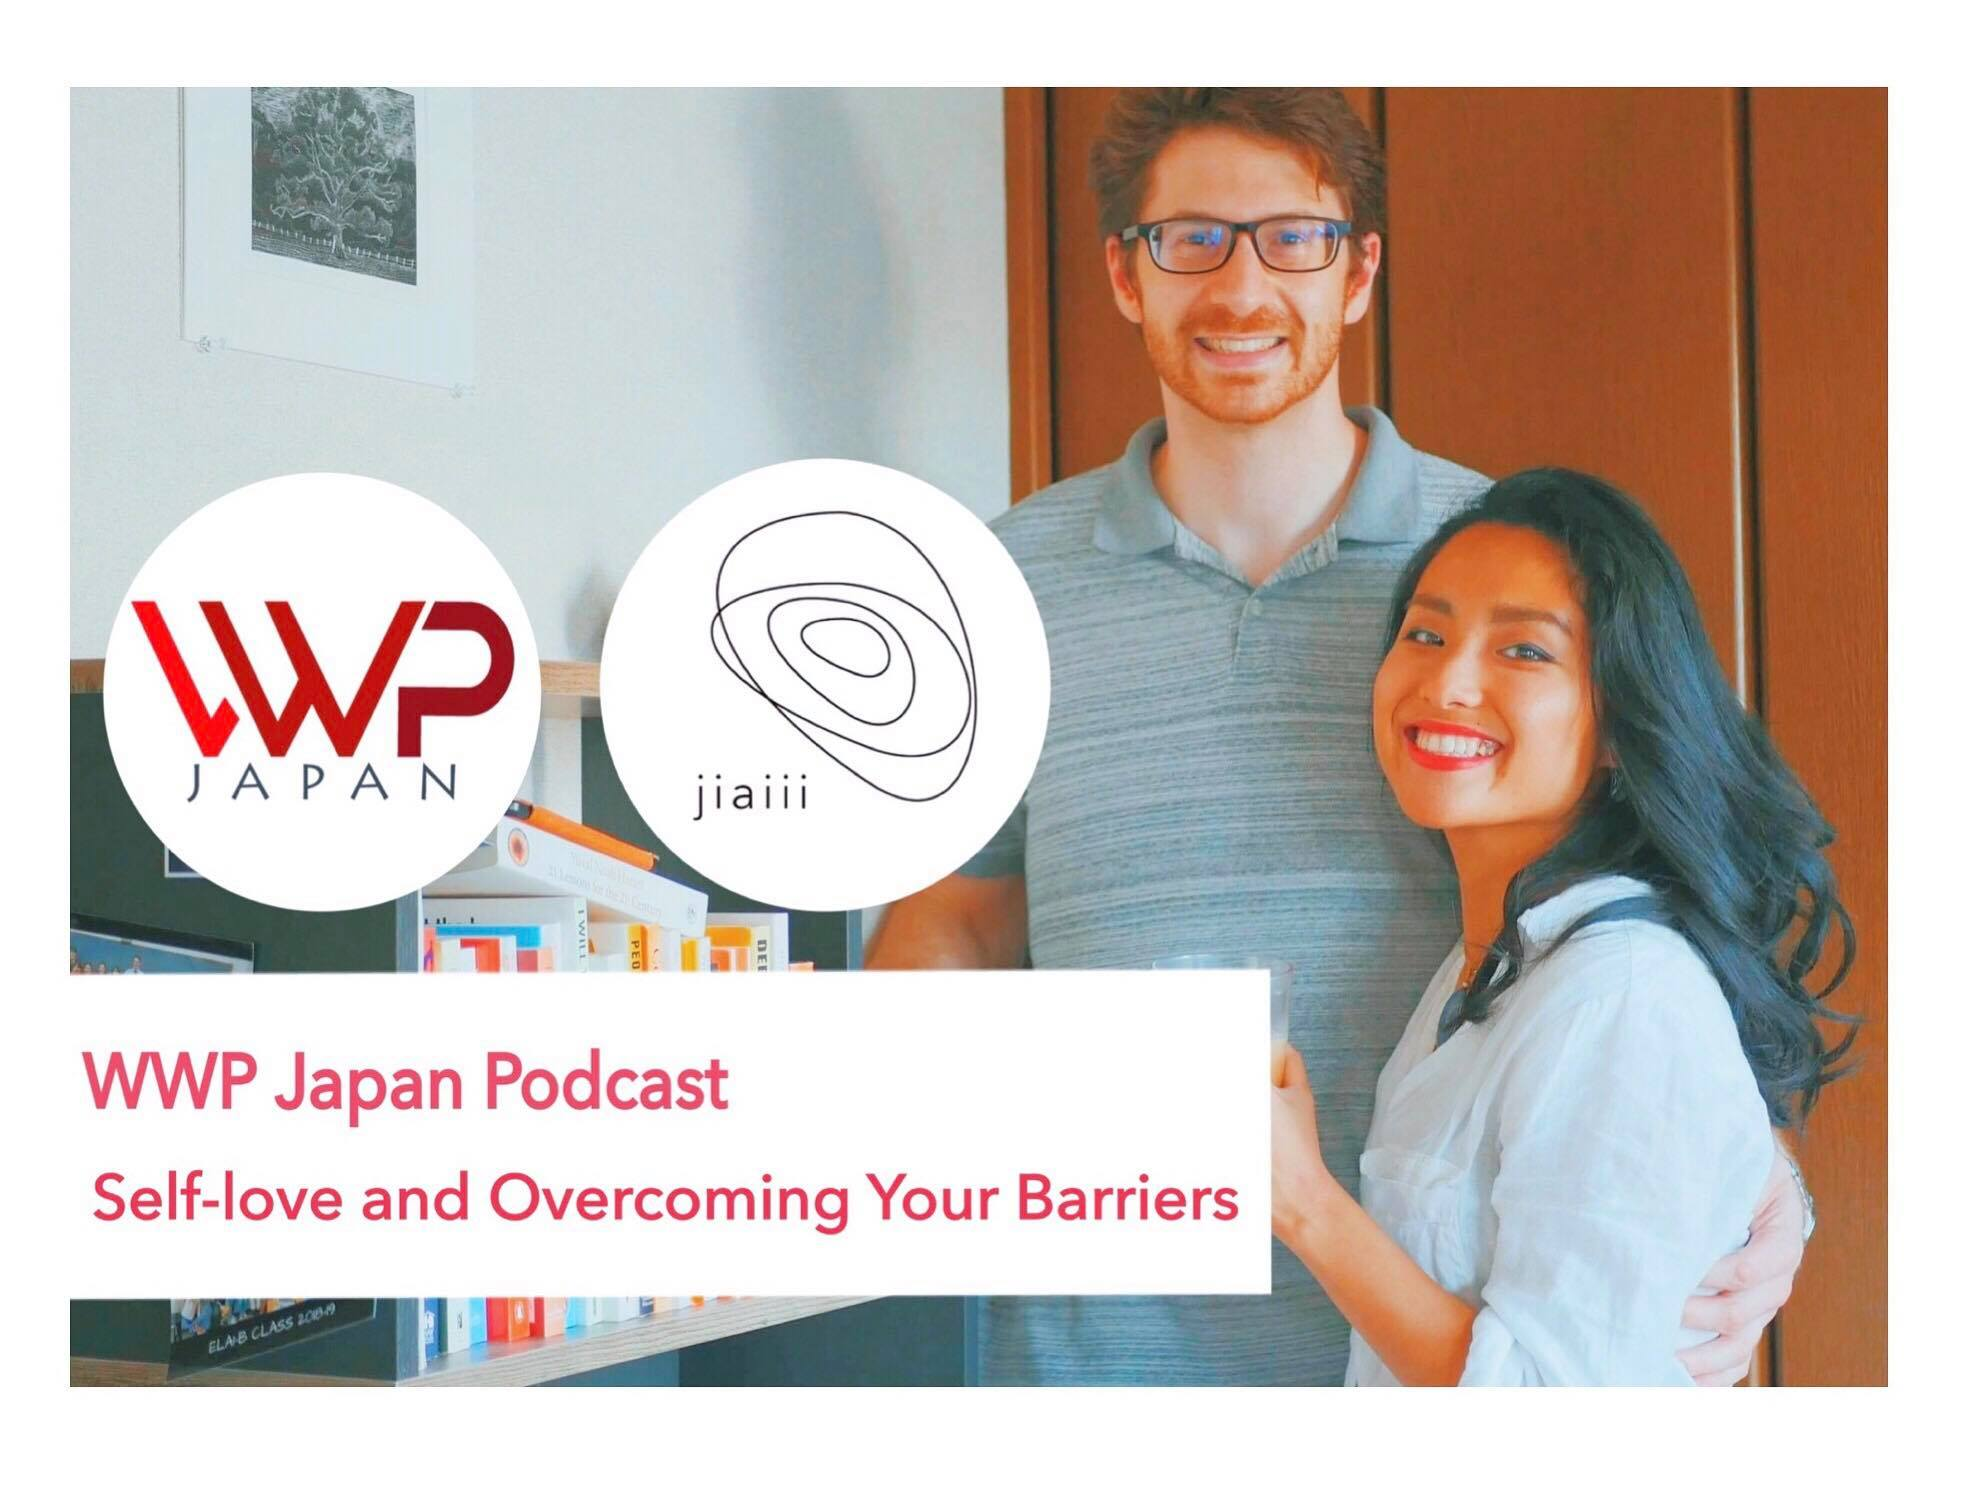 The founder of WWP Japan ( Live Work Play Japan) Charlie    His personal website:    https://charlie.coach/